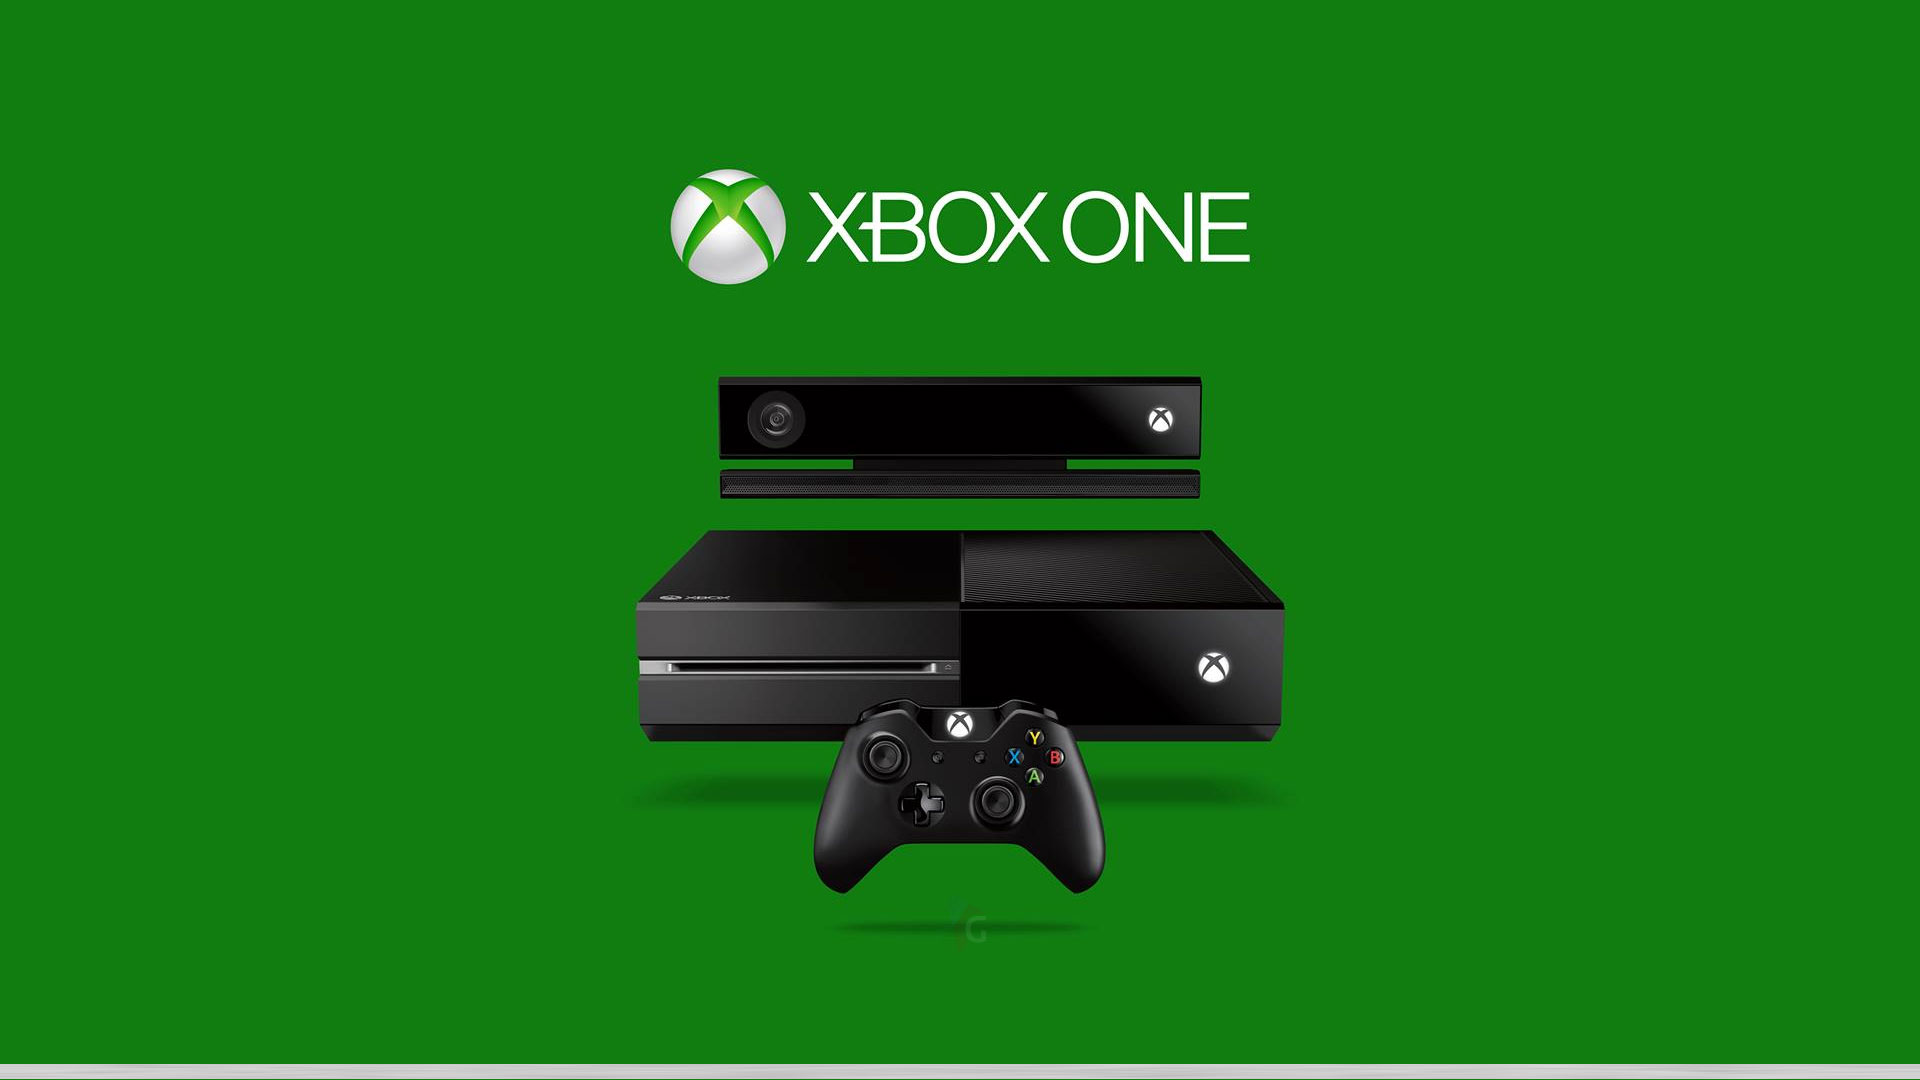 Xbox one wallpaper 1080p wallpapersafari - Xbox one wallpaper 1920x1080 ...